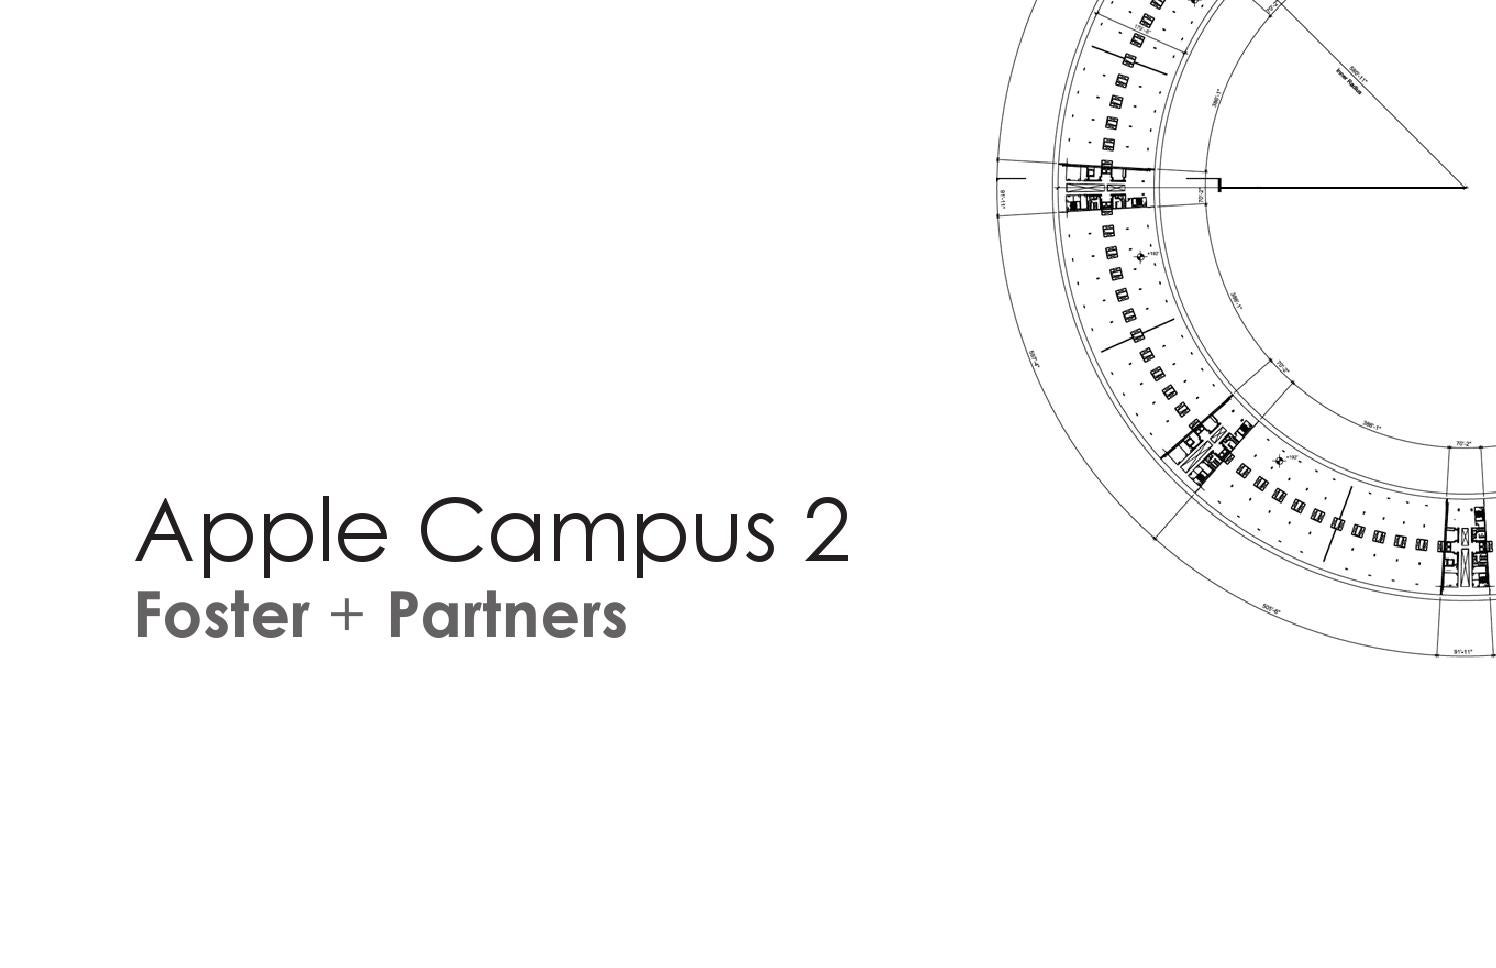 apple campus 2 case study by jacob gulezian